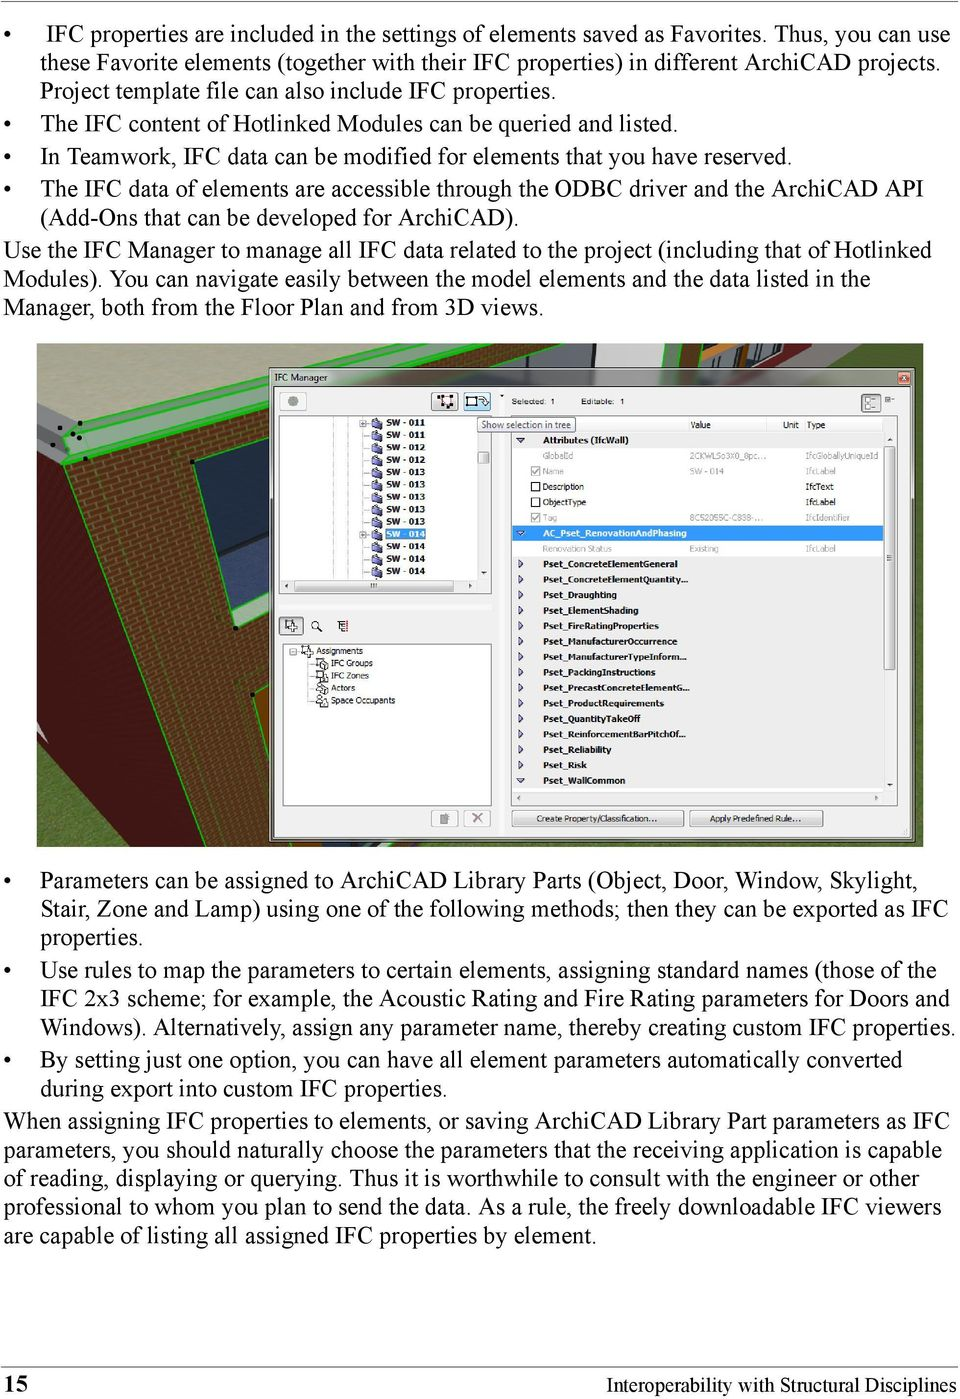 The IFC data of elements are accessible through the ODBC driver and the ArchiCAD API (Add-Ons that can be developed for ArchiCAD).